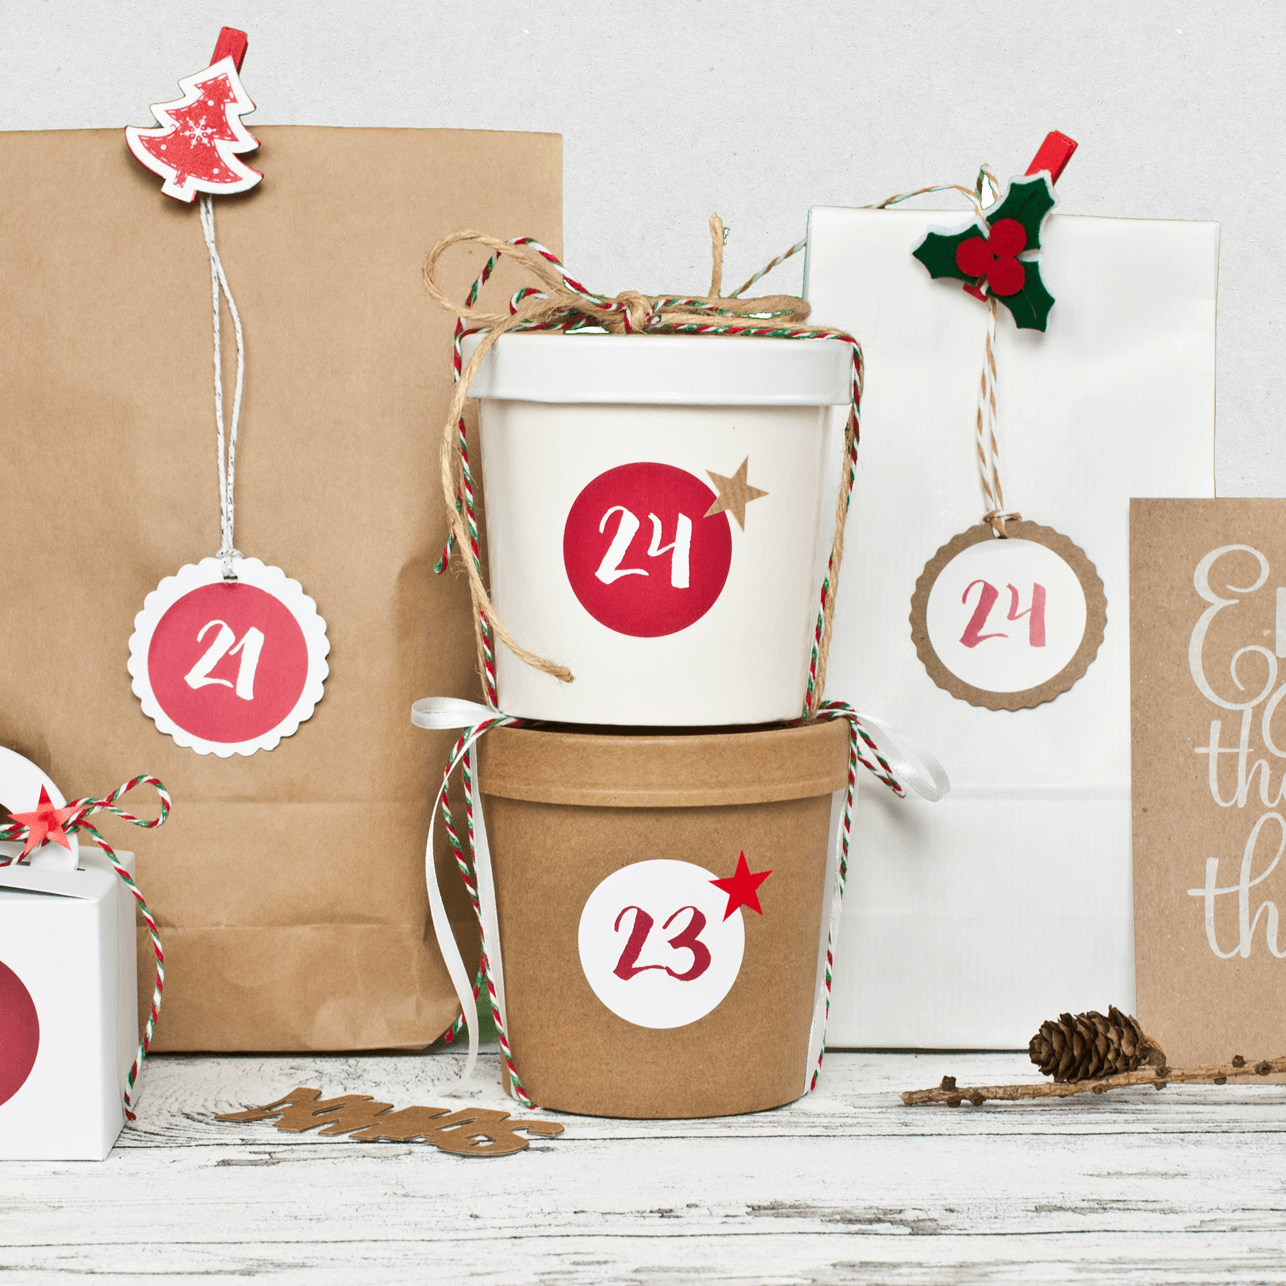 Adventskalender Sets